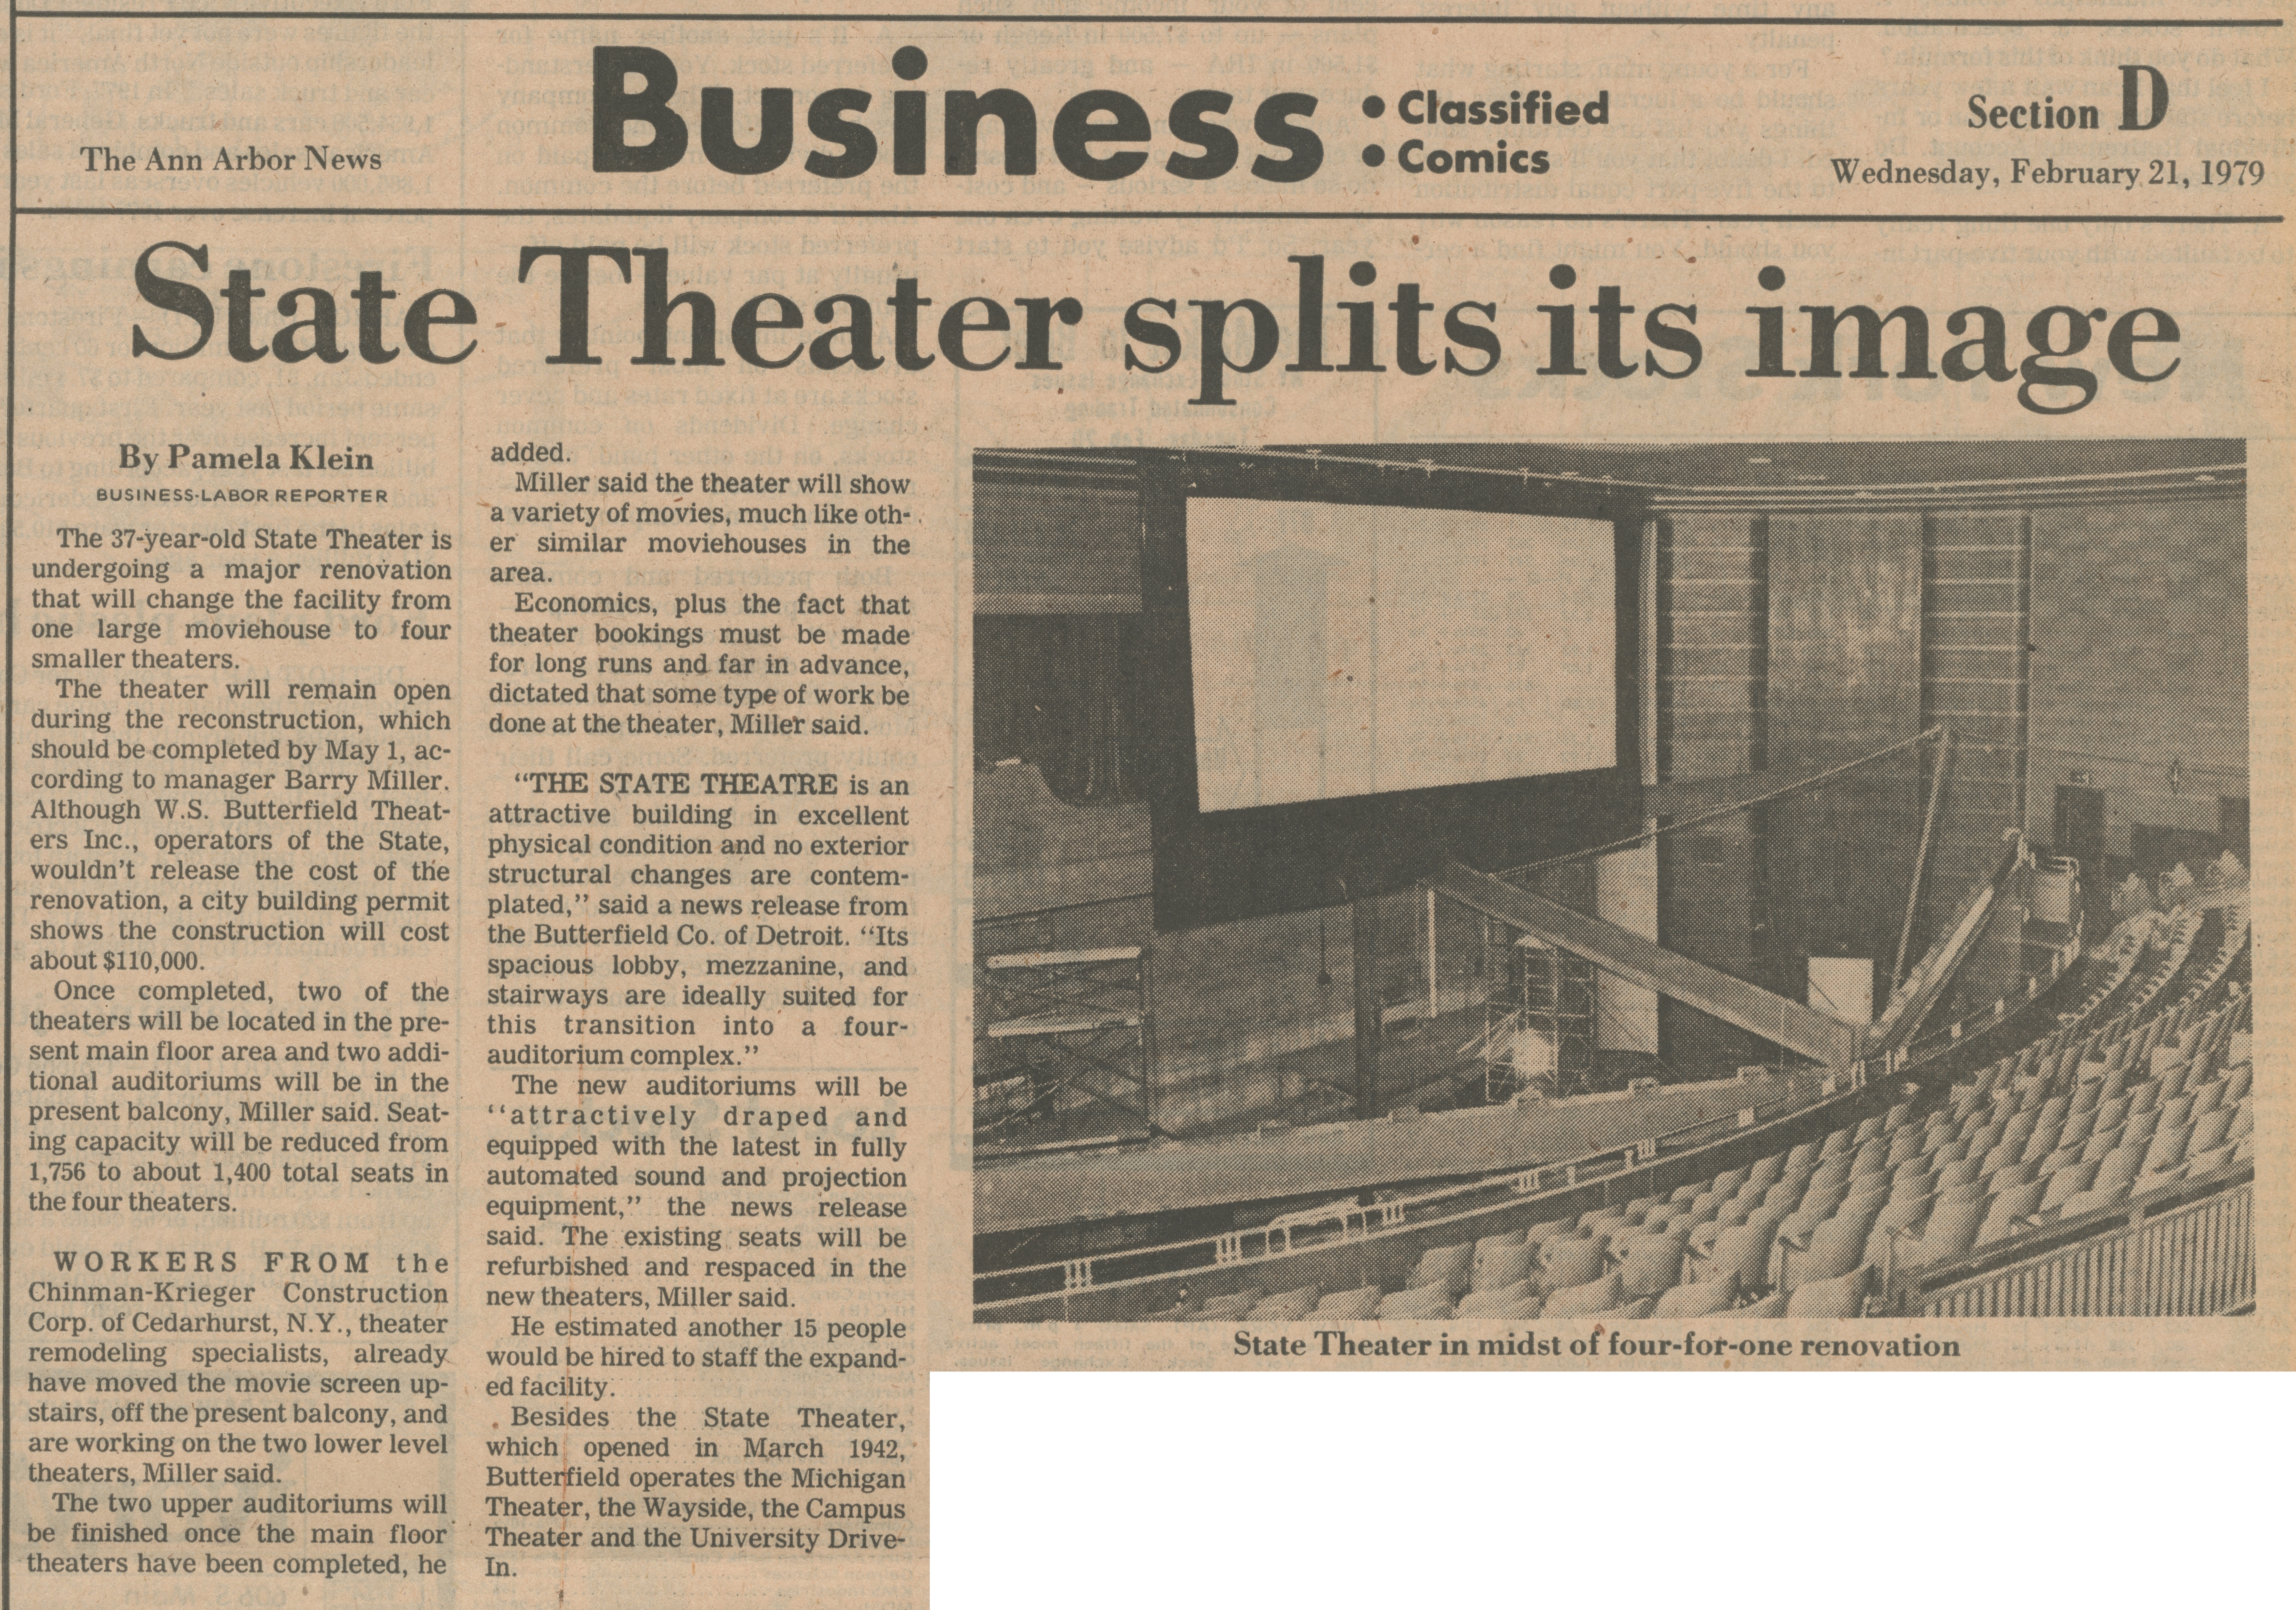 state theater splits its